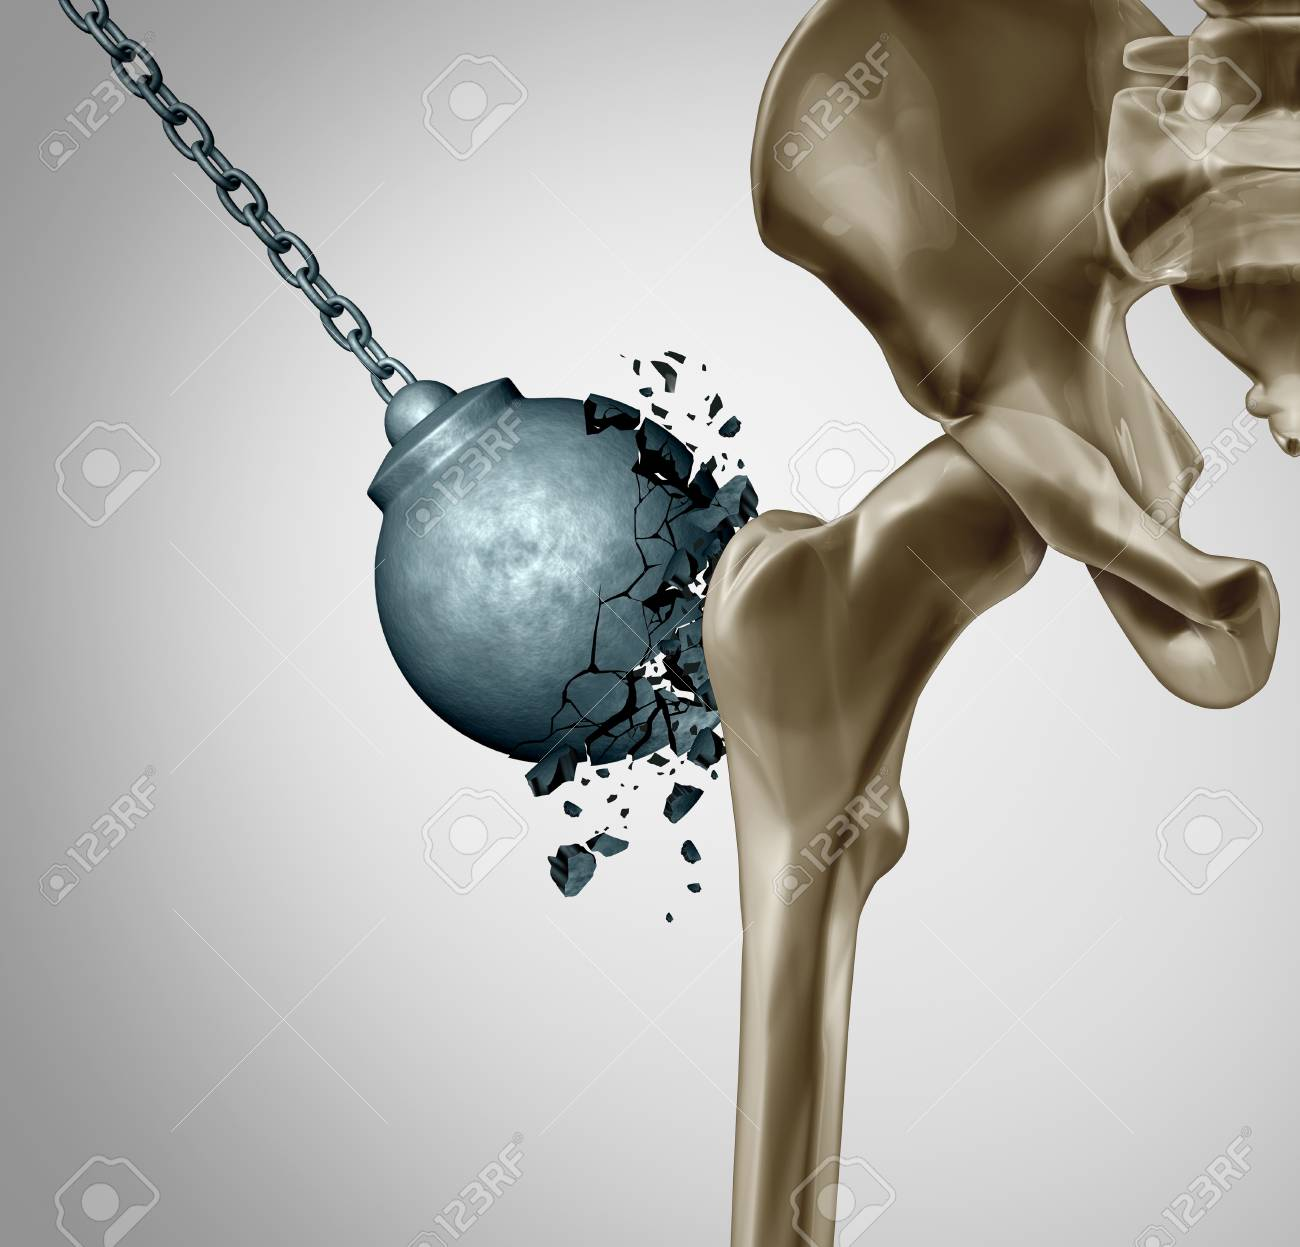 Strong bones and healthy human bone orthopedics and strength in mineral density medical concept as a wrecking ball destroyed by osteoporosis prevention medicine as 3D illustration. - 114695511